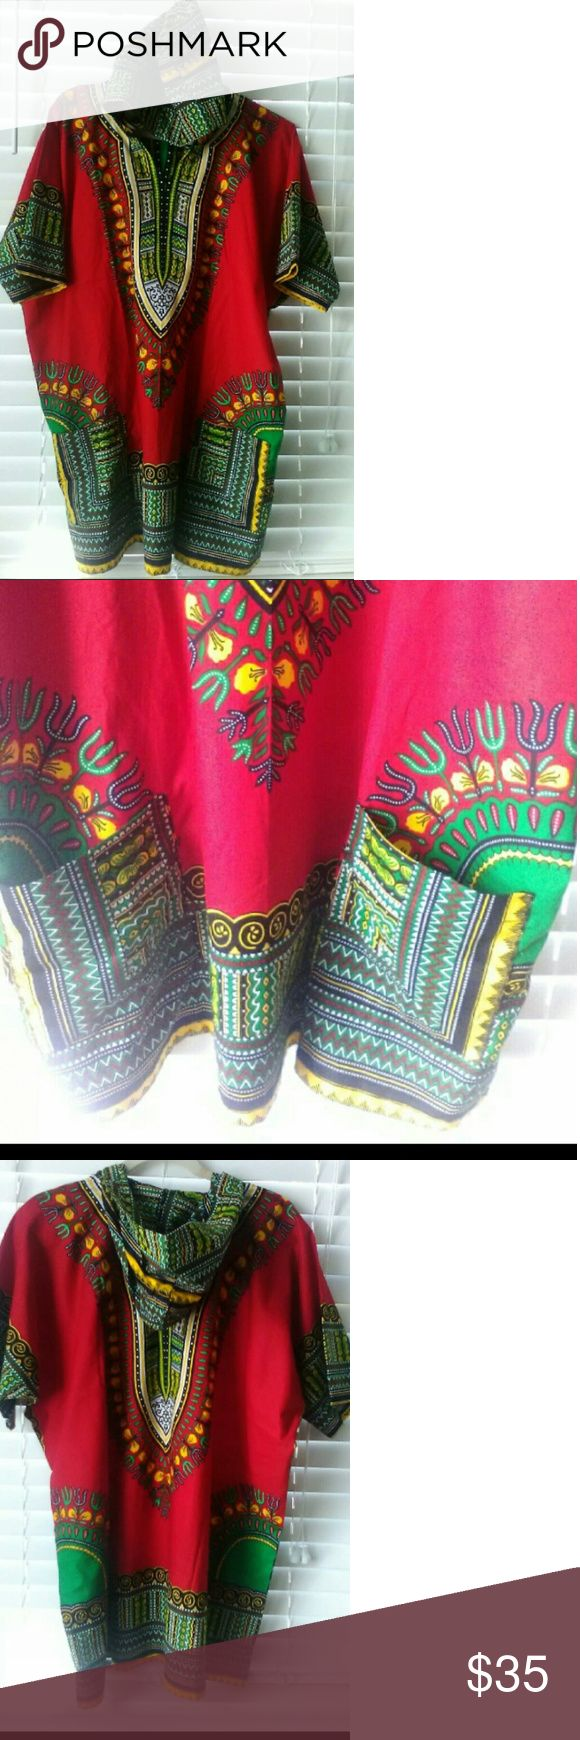 Red Dashiki Two pocket hooded dashiki!!! One size fits all Dresses